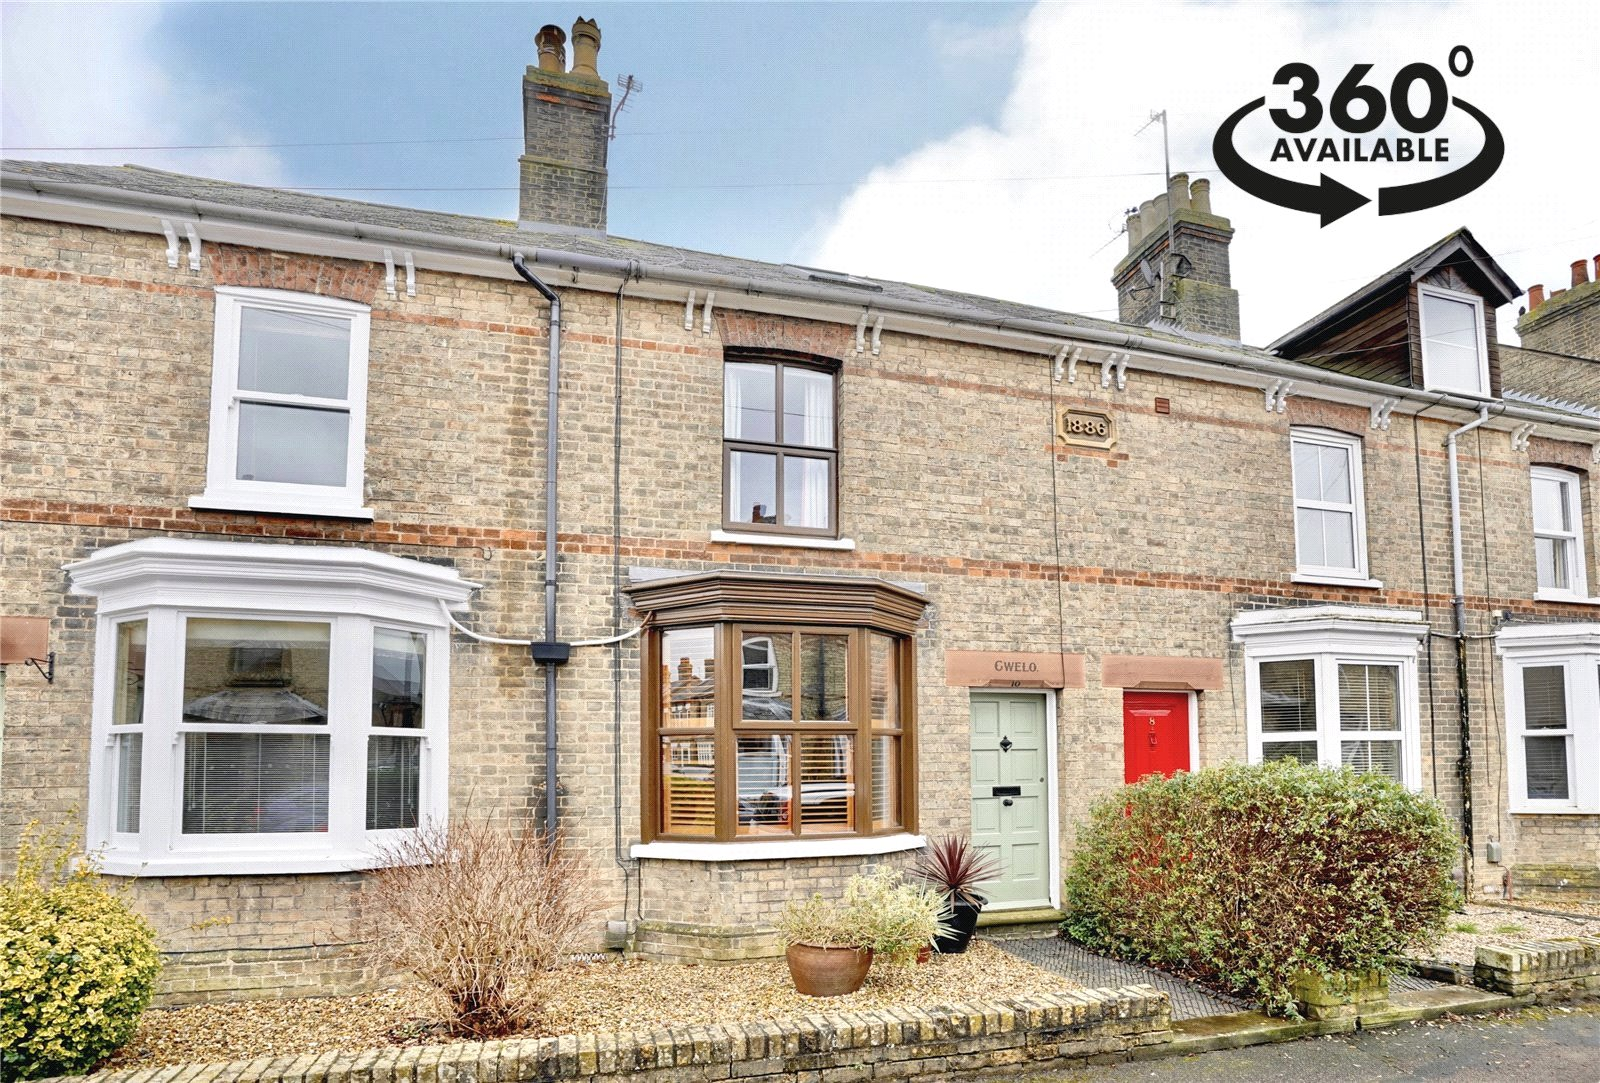 2 bed house for sale in St. Neots, PE19 1LJ, PE19